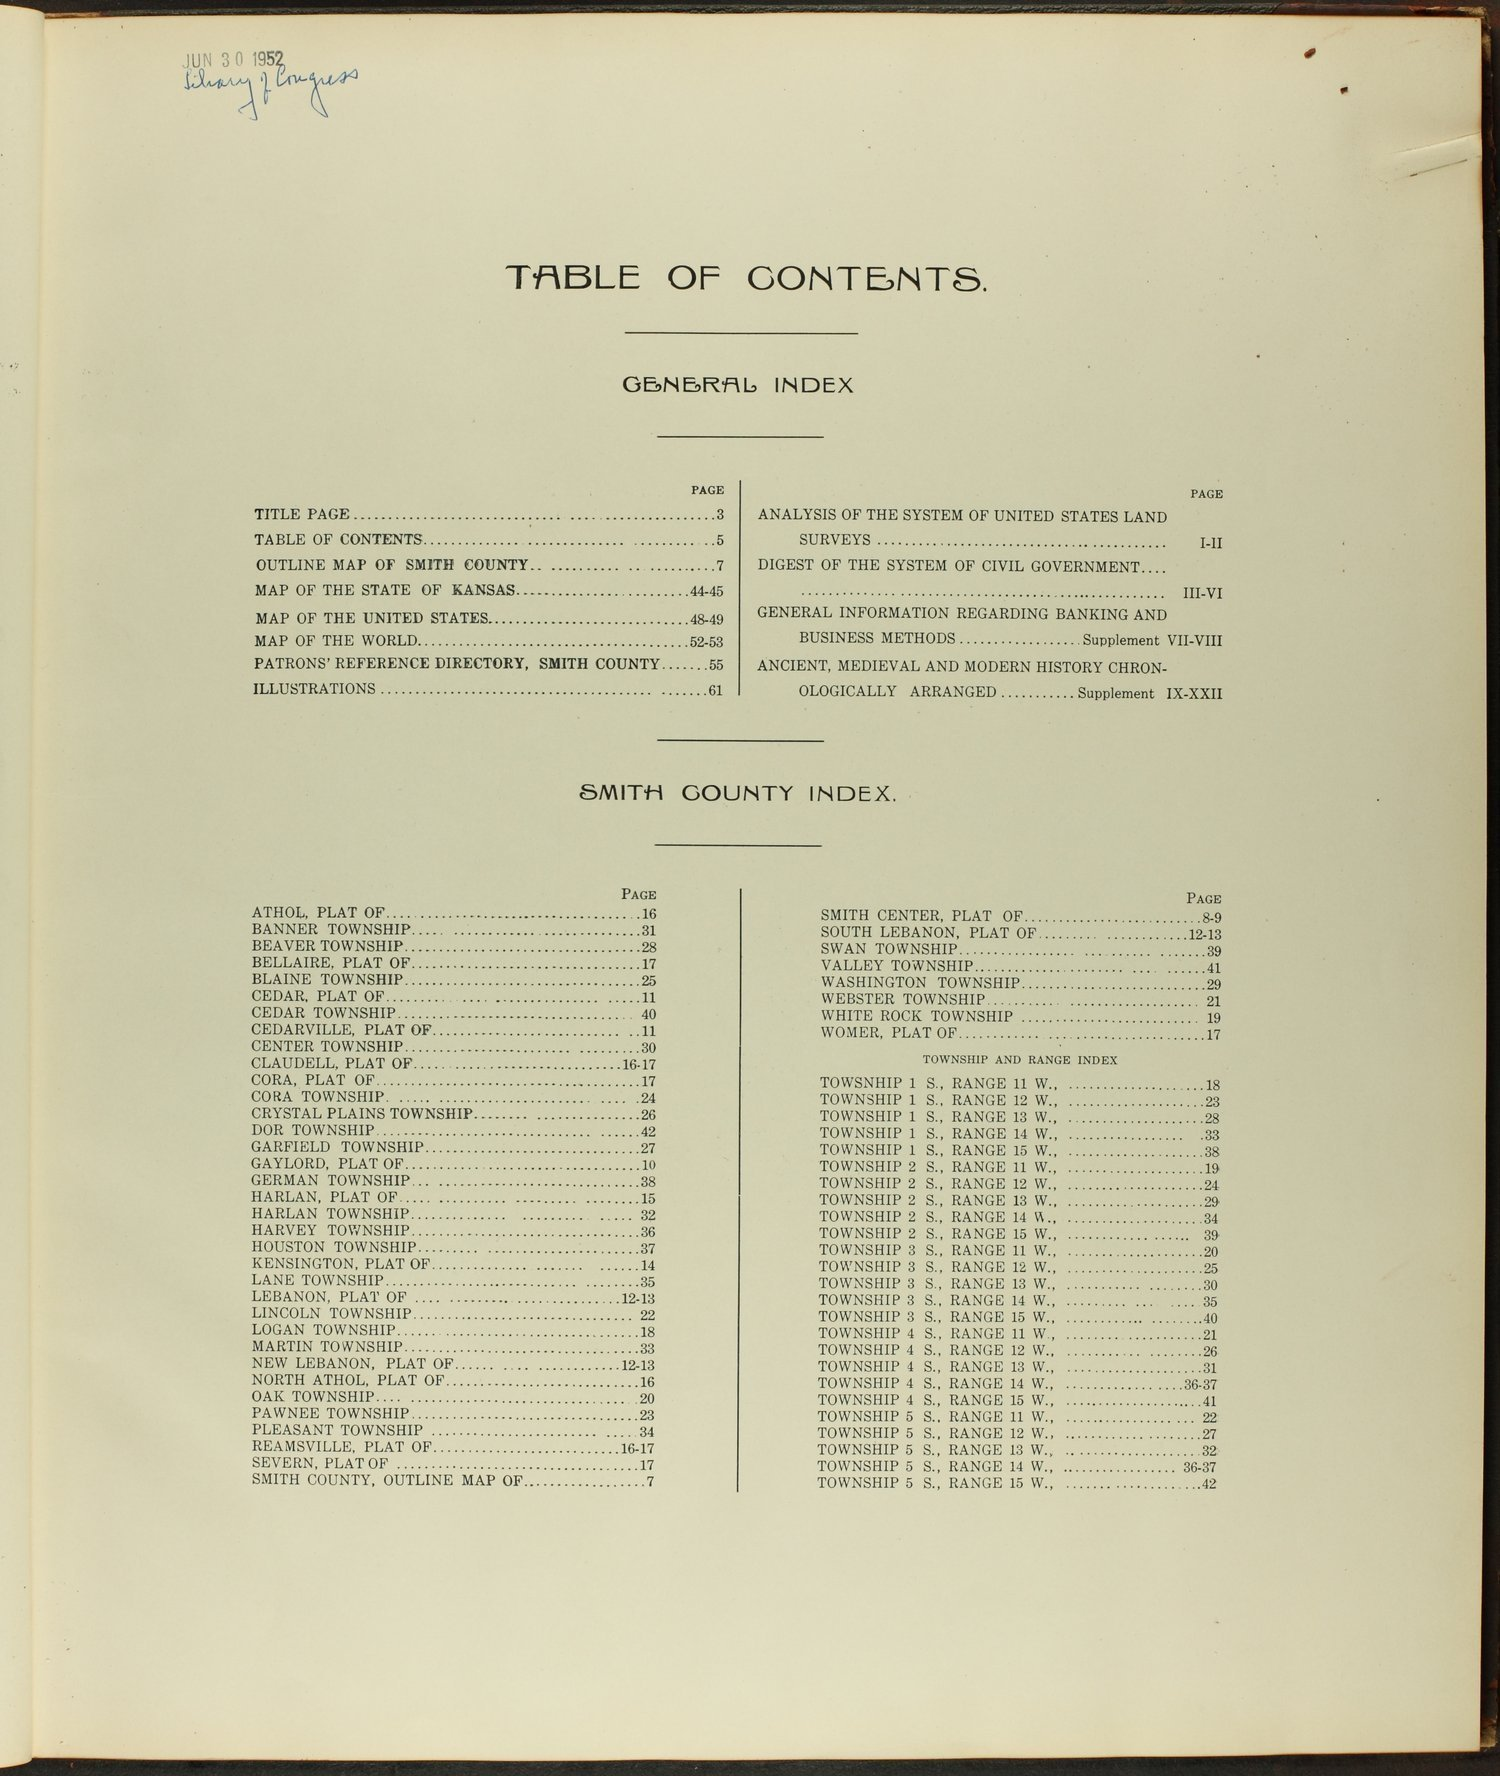 Standard atlas of Smith County, Kansas - Table of Contents